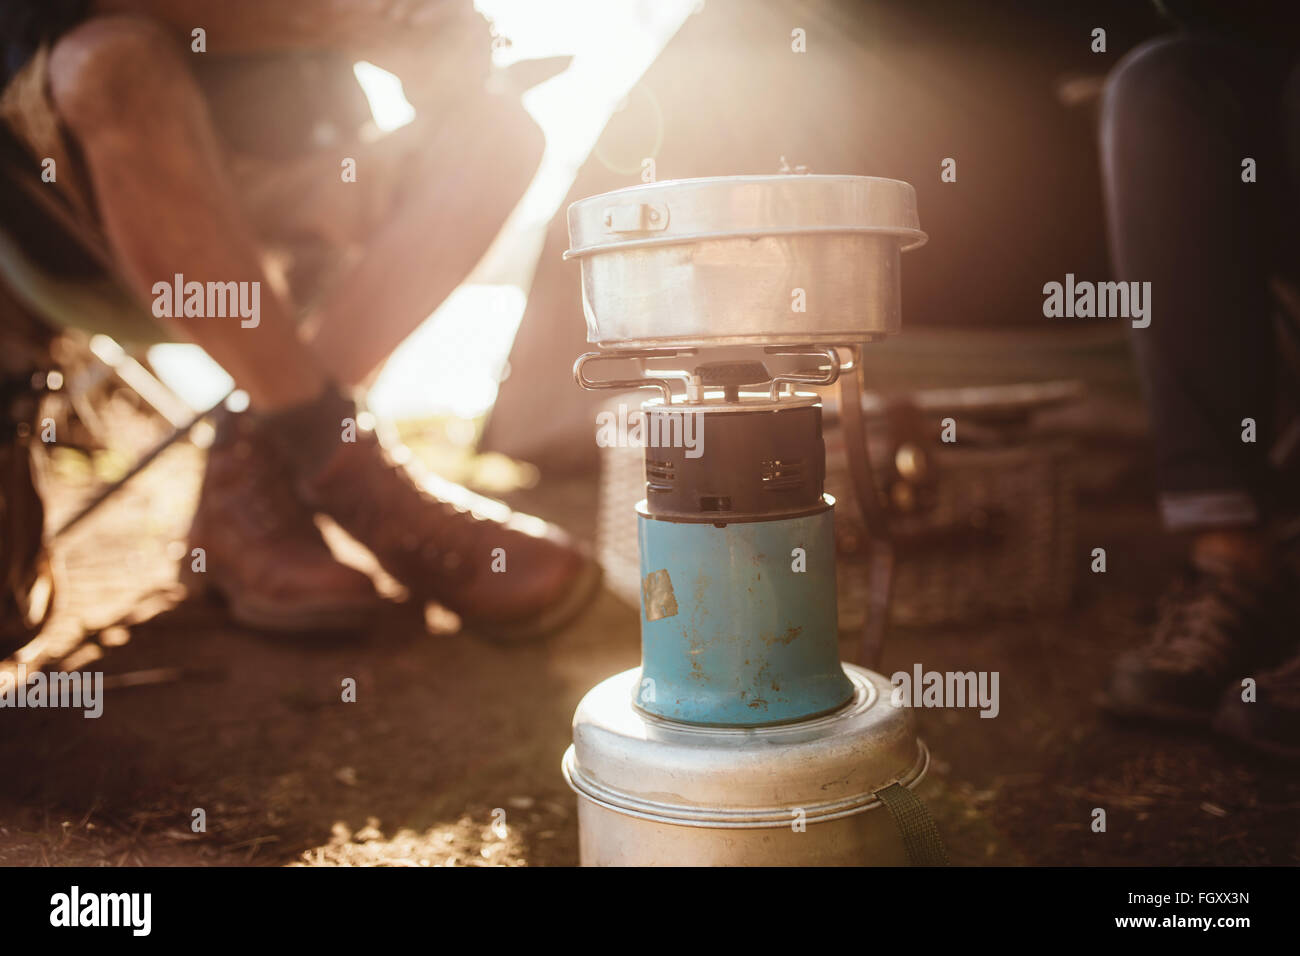 Close up portrait of a camp stove with couple sitting in background. - Stock Image